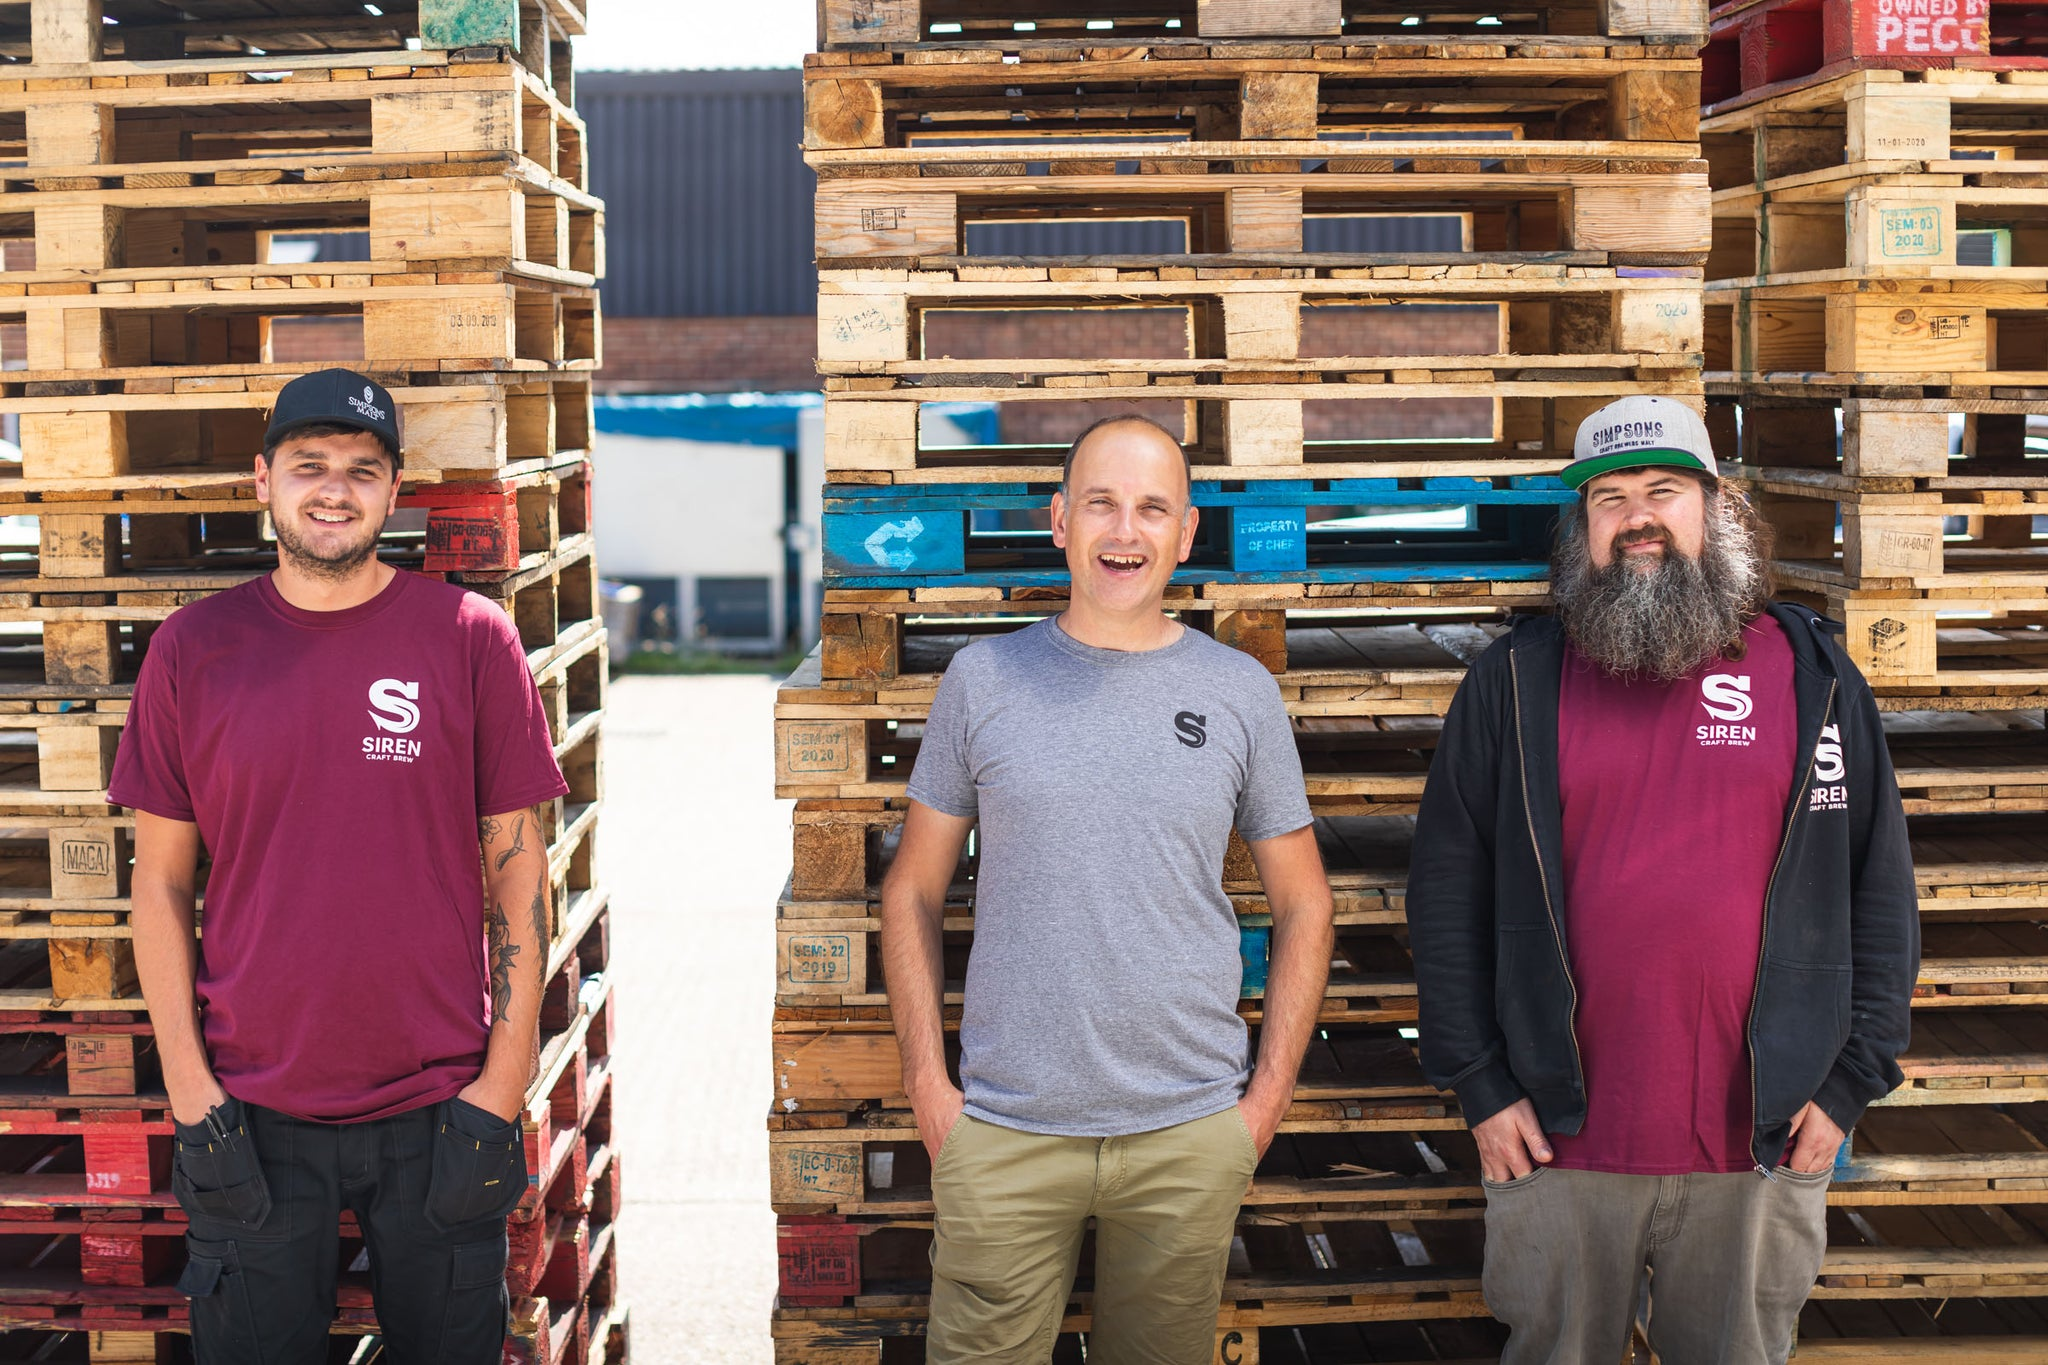 Meet the Siren brewery – Darren Anley and the brewers at Siren Craft Brew